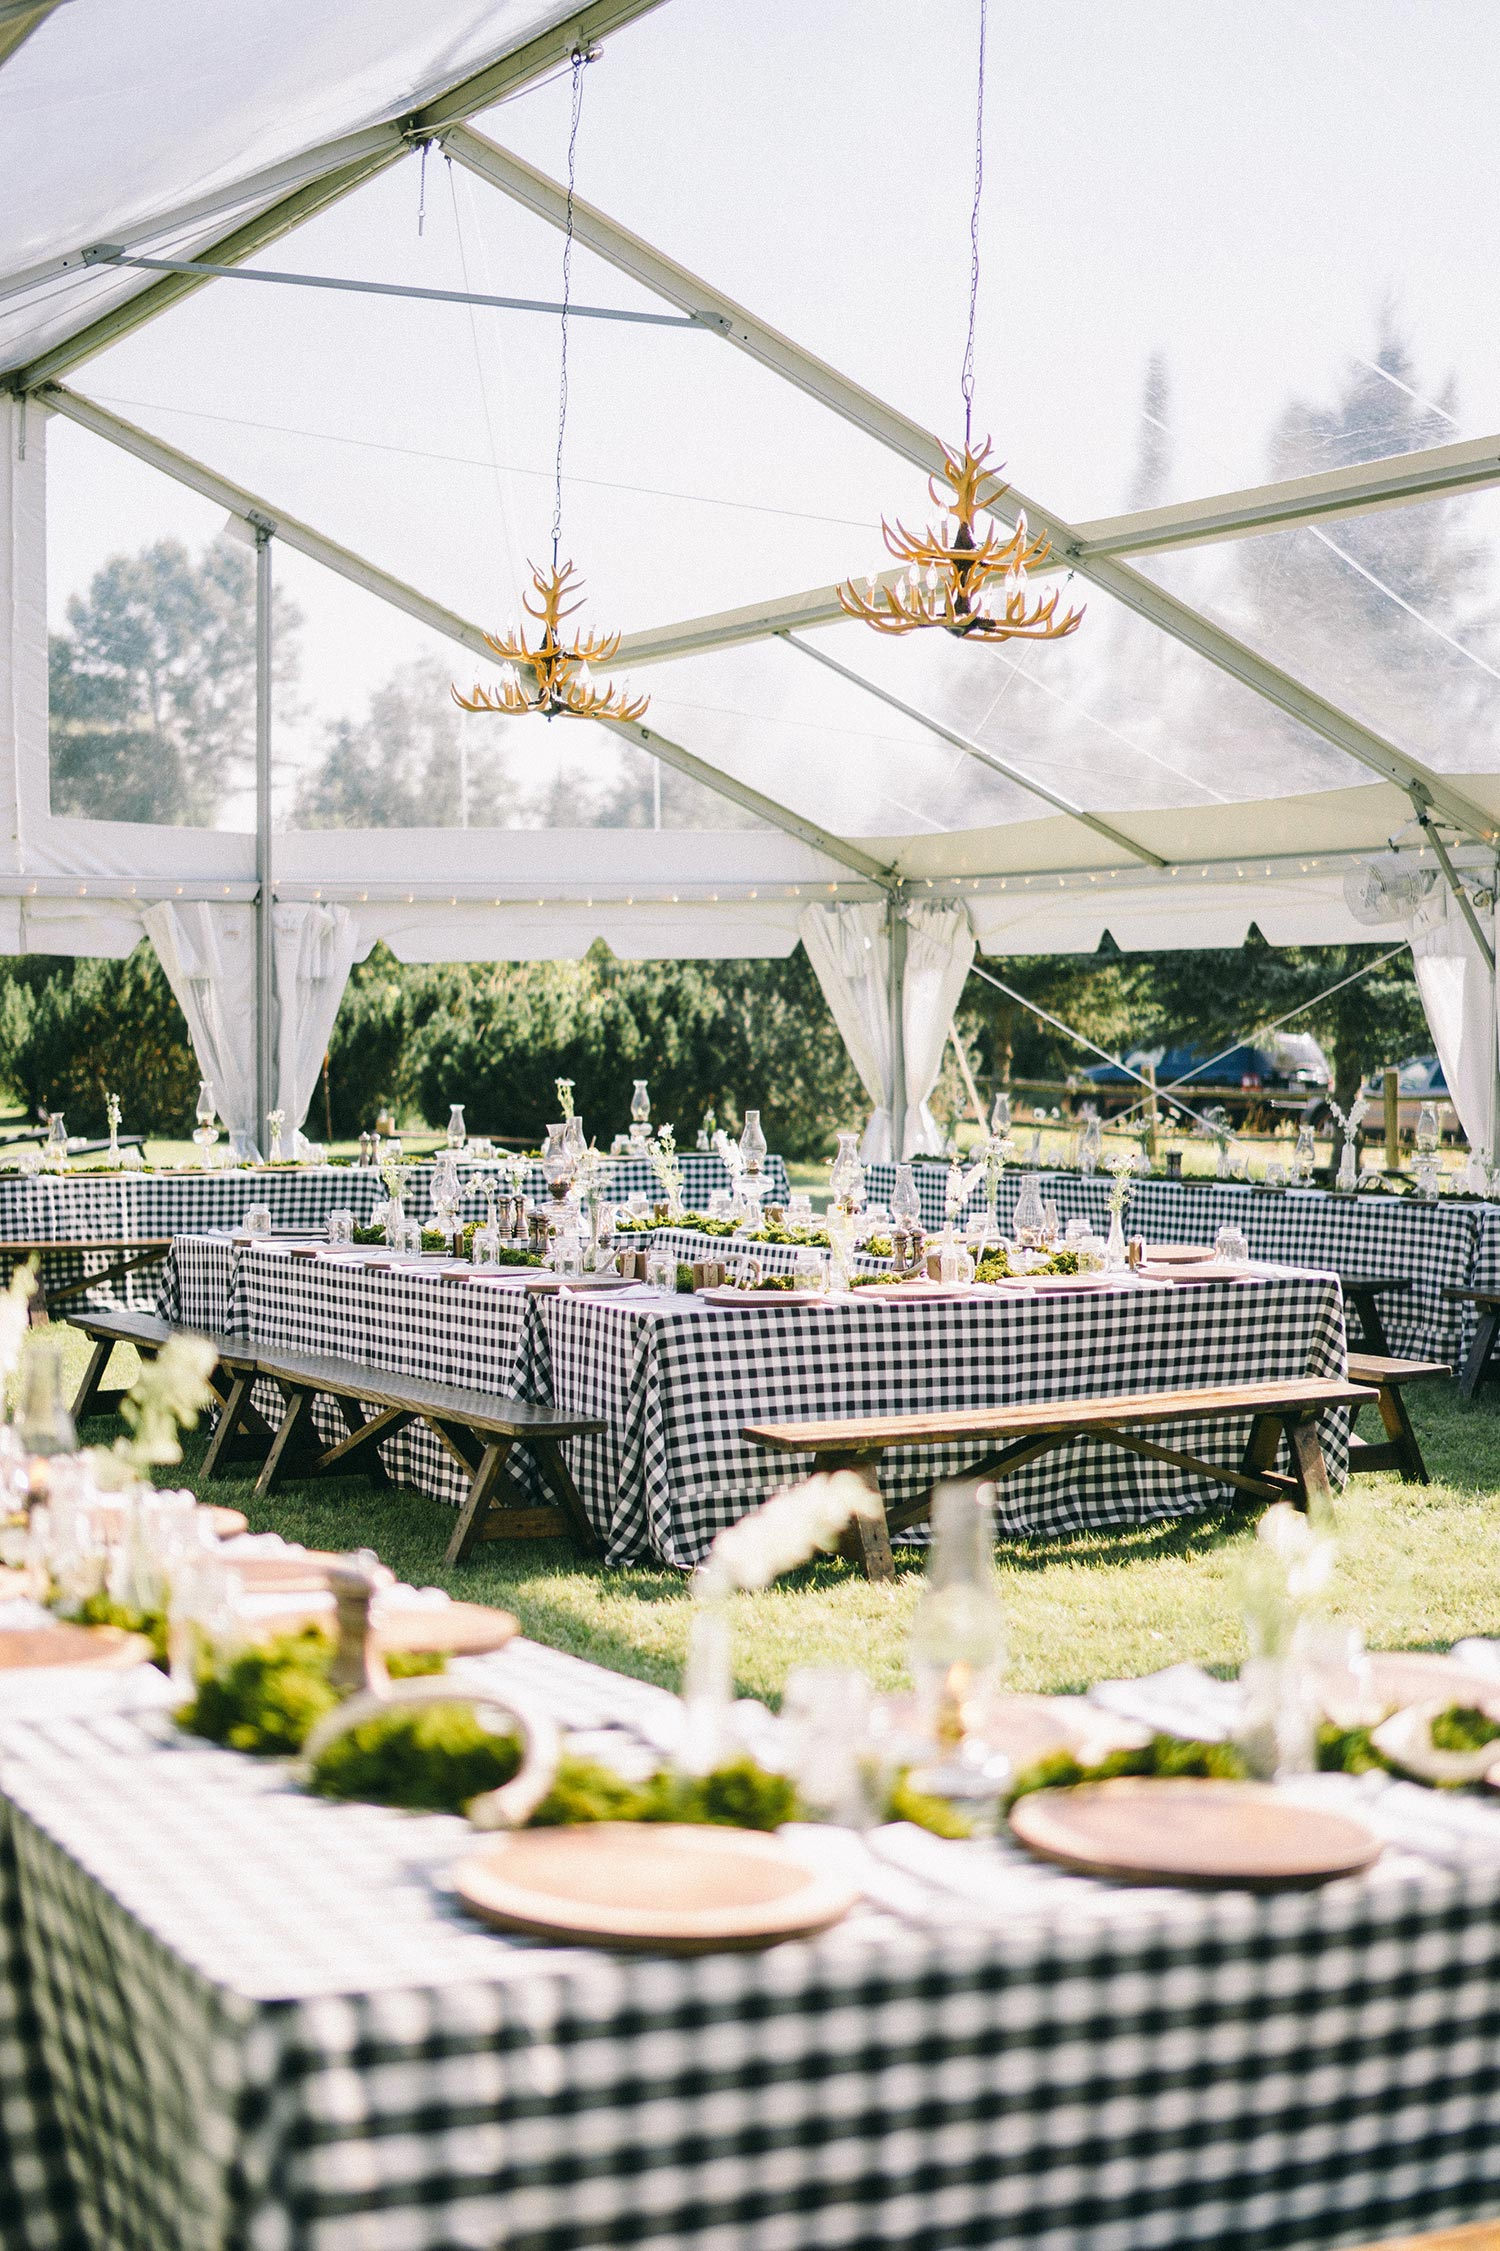 ranch style rehearsal dinner in clear tent